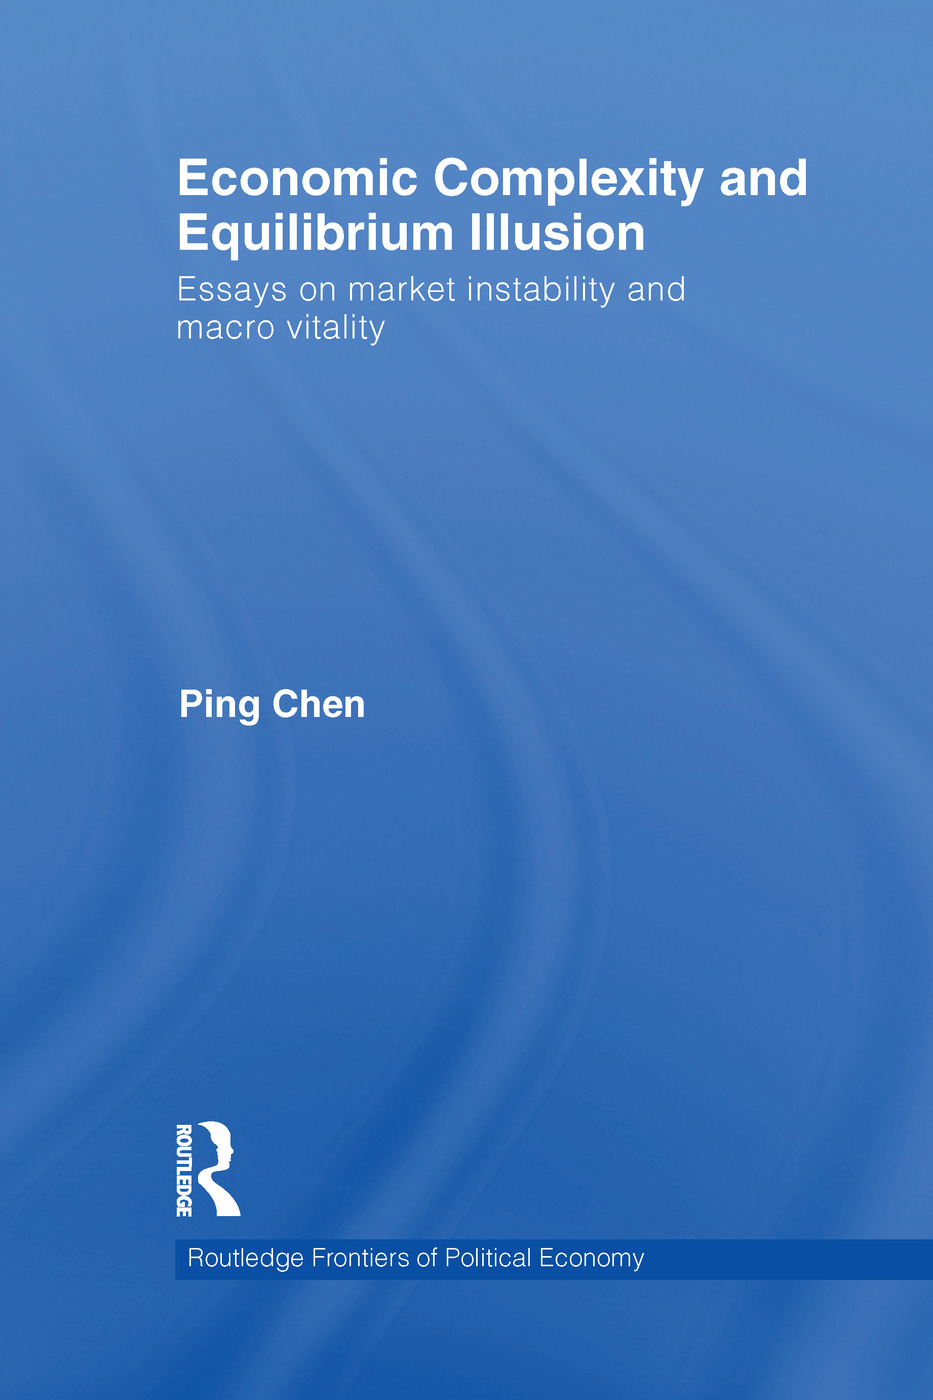 Economic Complexity and Equilibrium Illusion: Essays on market instability and macro vitality book cover